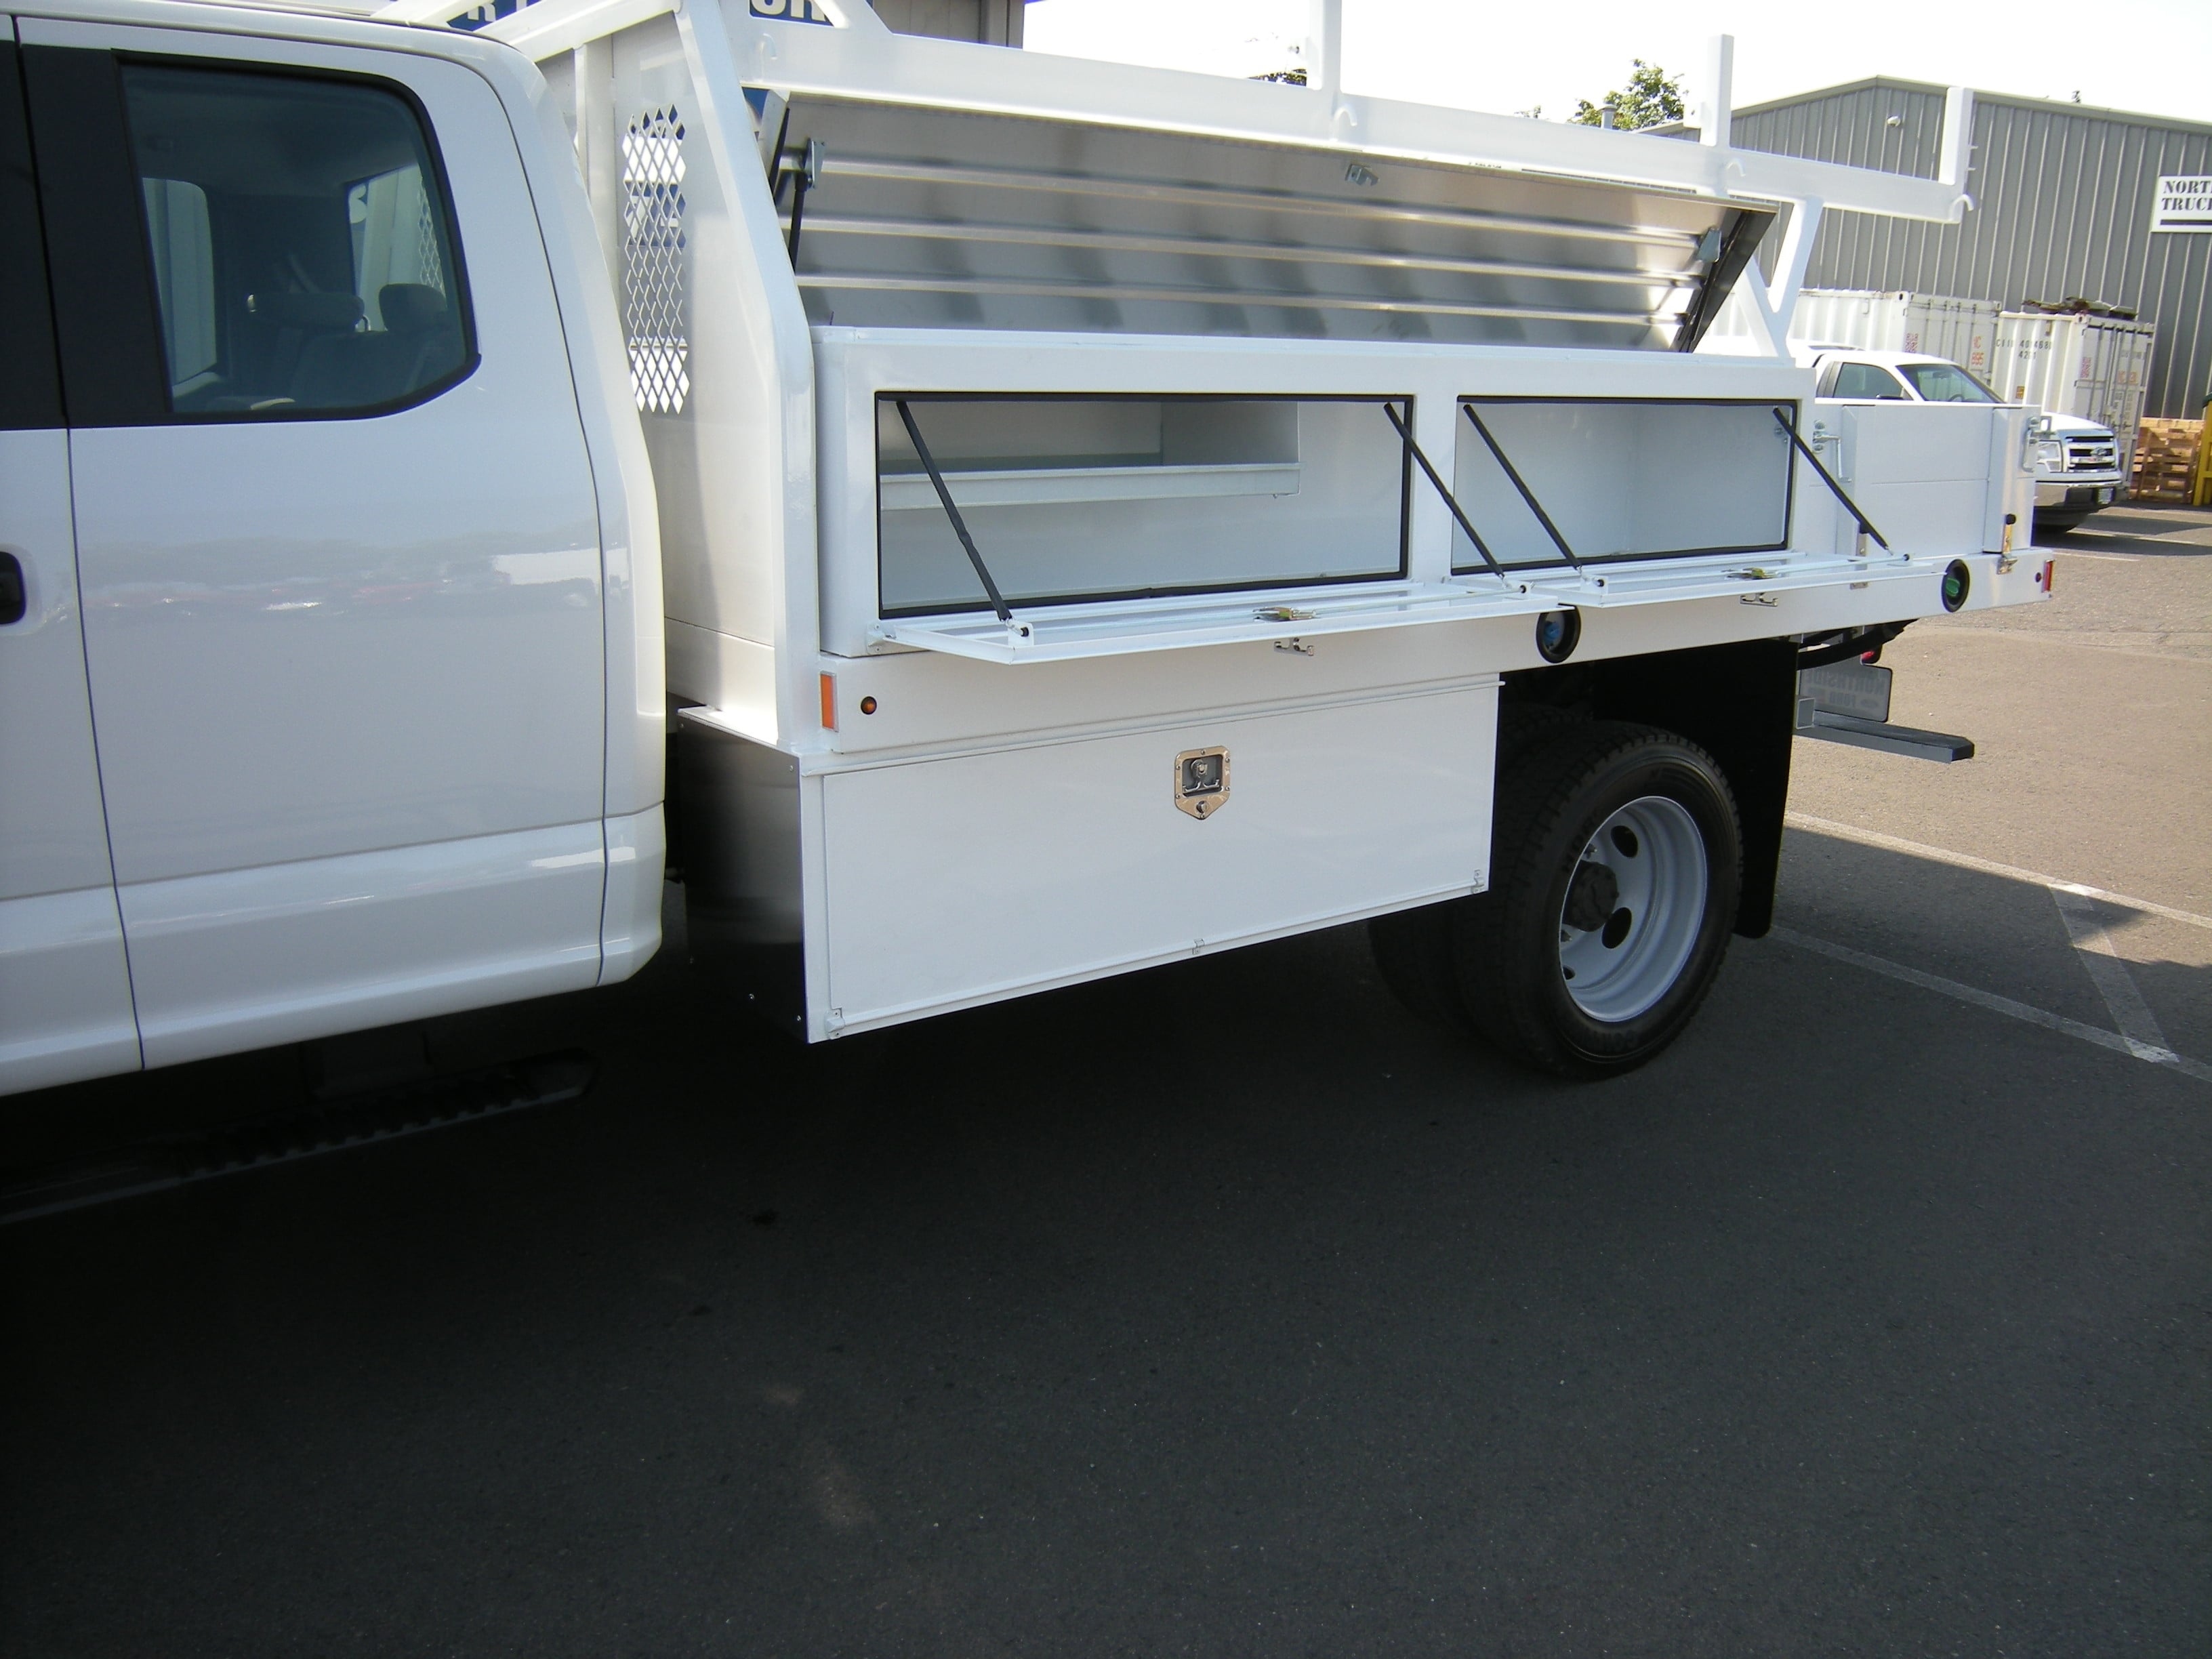 2018 F-450 Super Cab DRW,  Contractor Body #4685 - photo 7